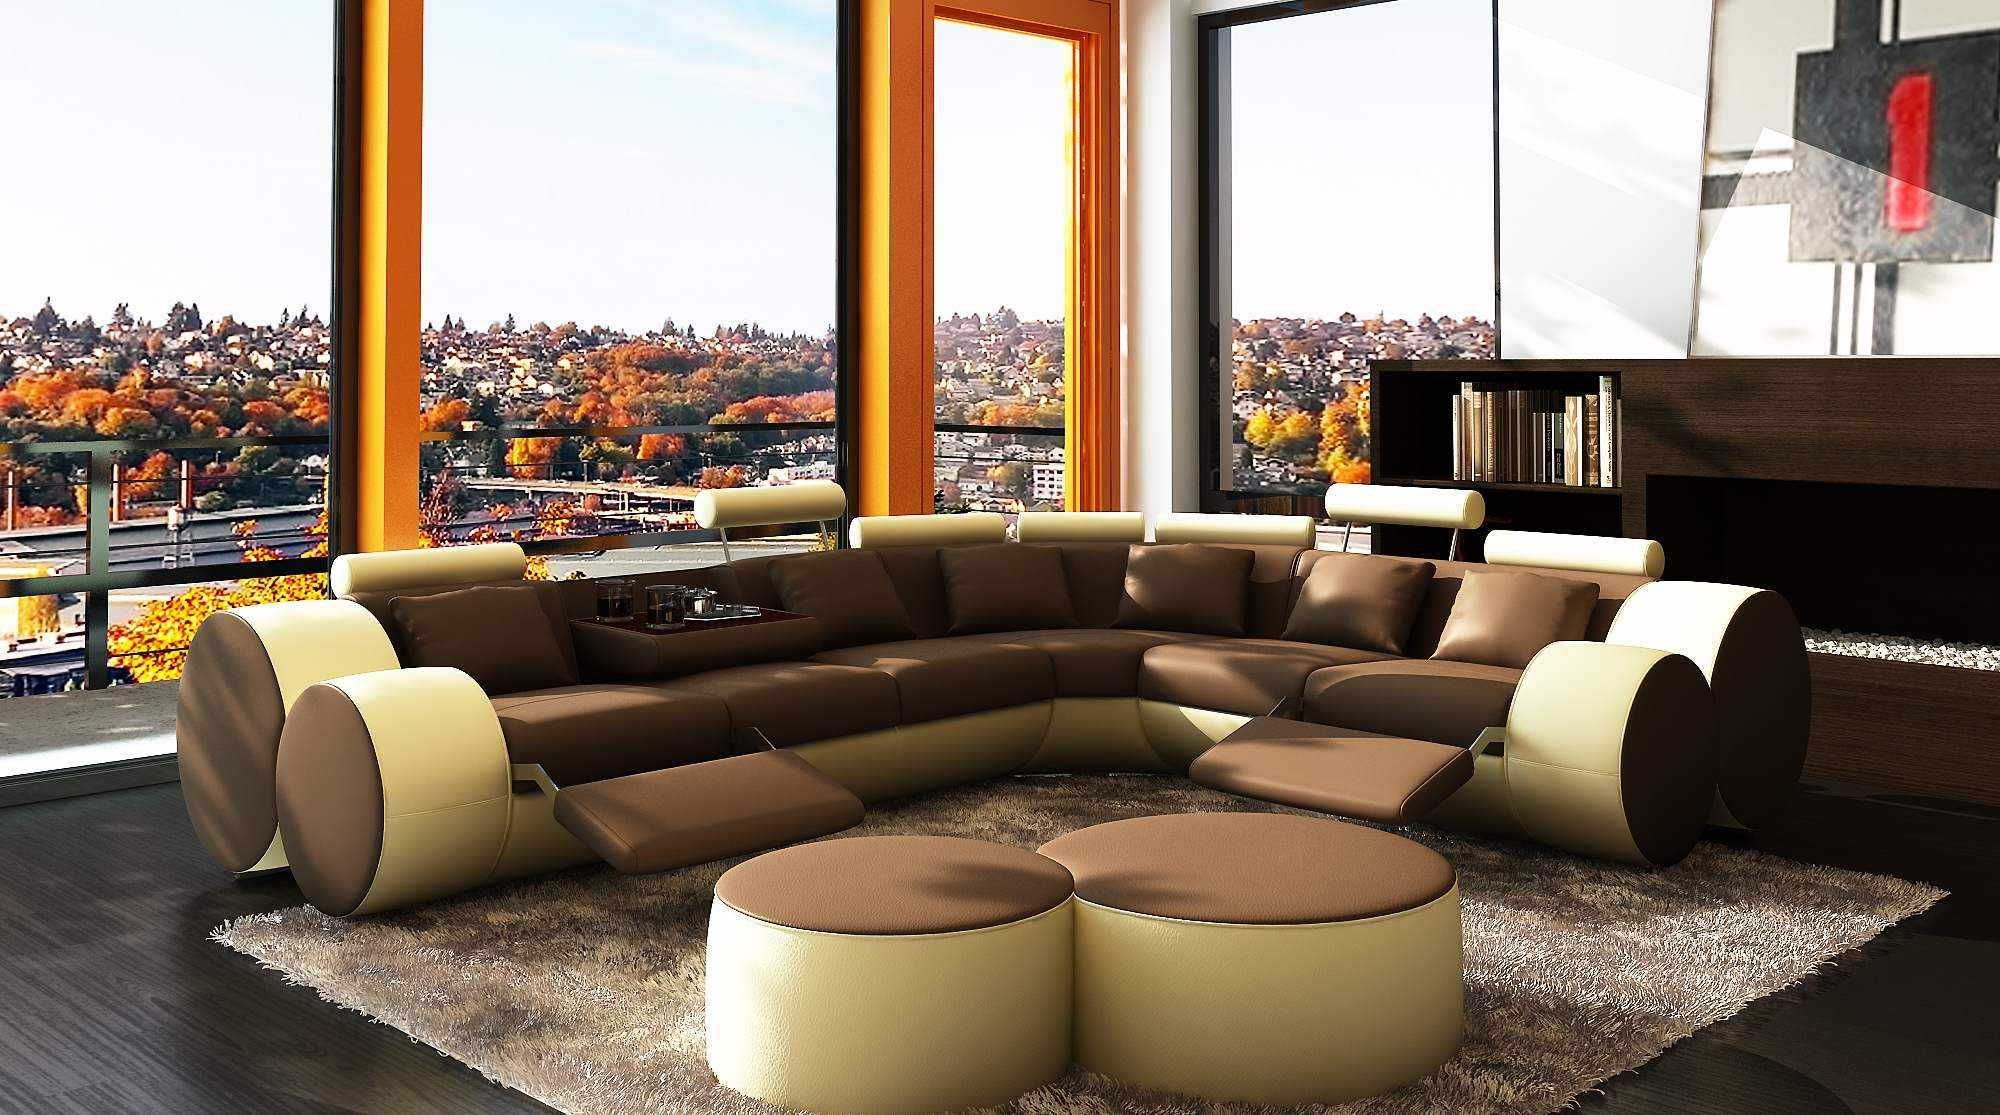 deco in paris canape d angle cuir marron et beige positions relax roma can angle roma marron beige. Black Bedroom Furniture Sets. Home Design Ideas